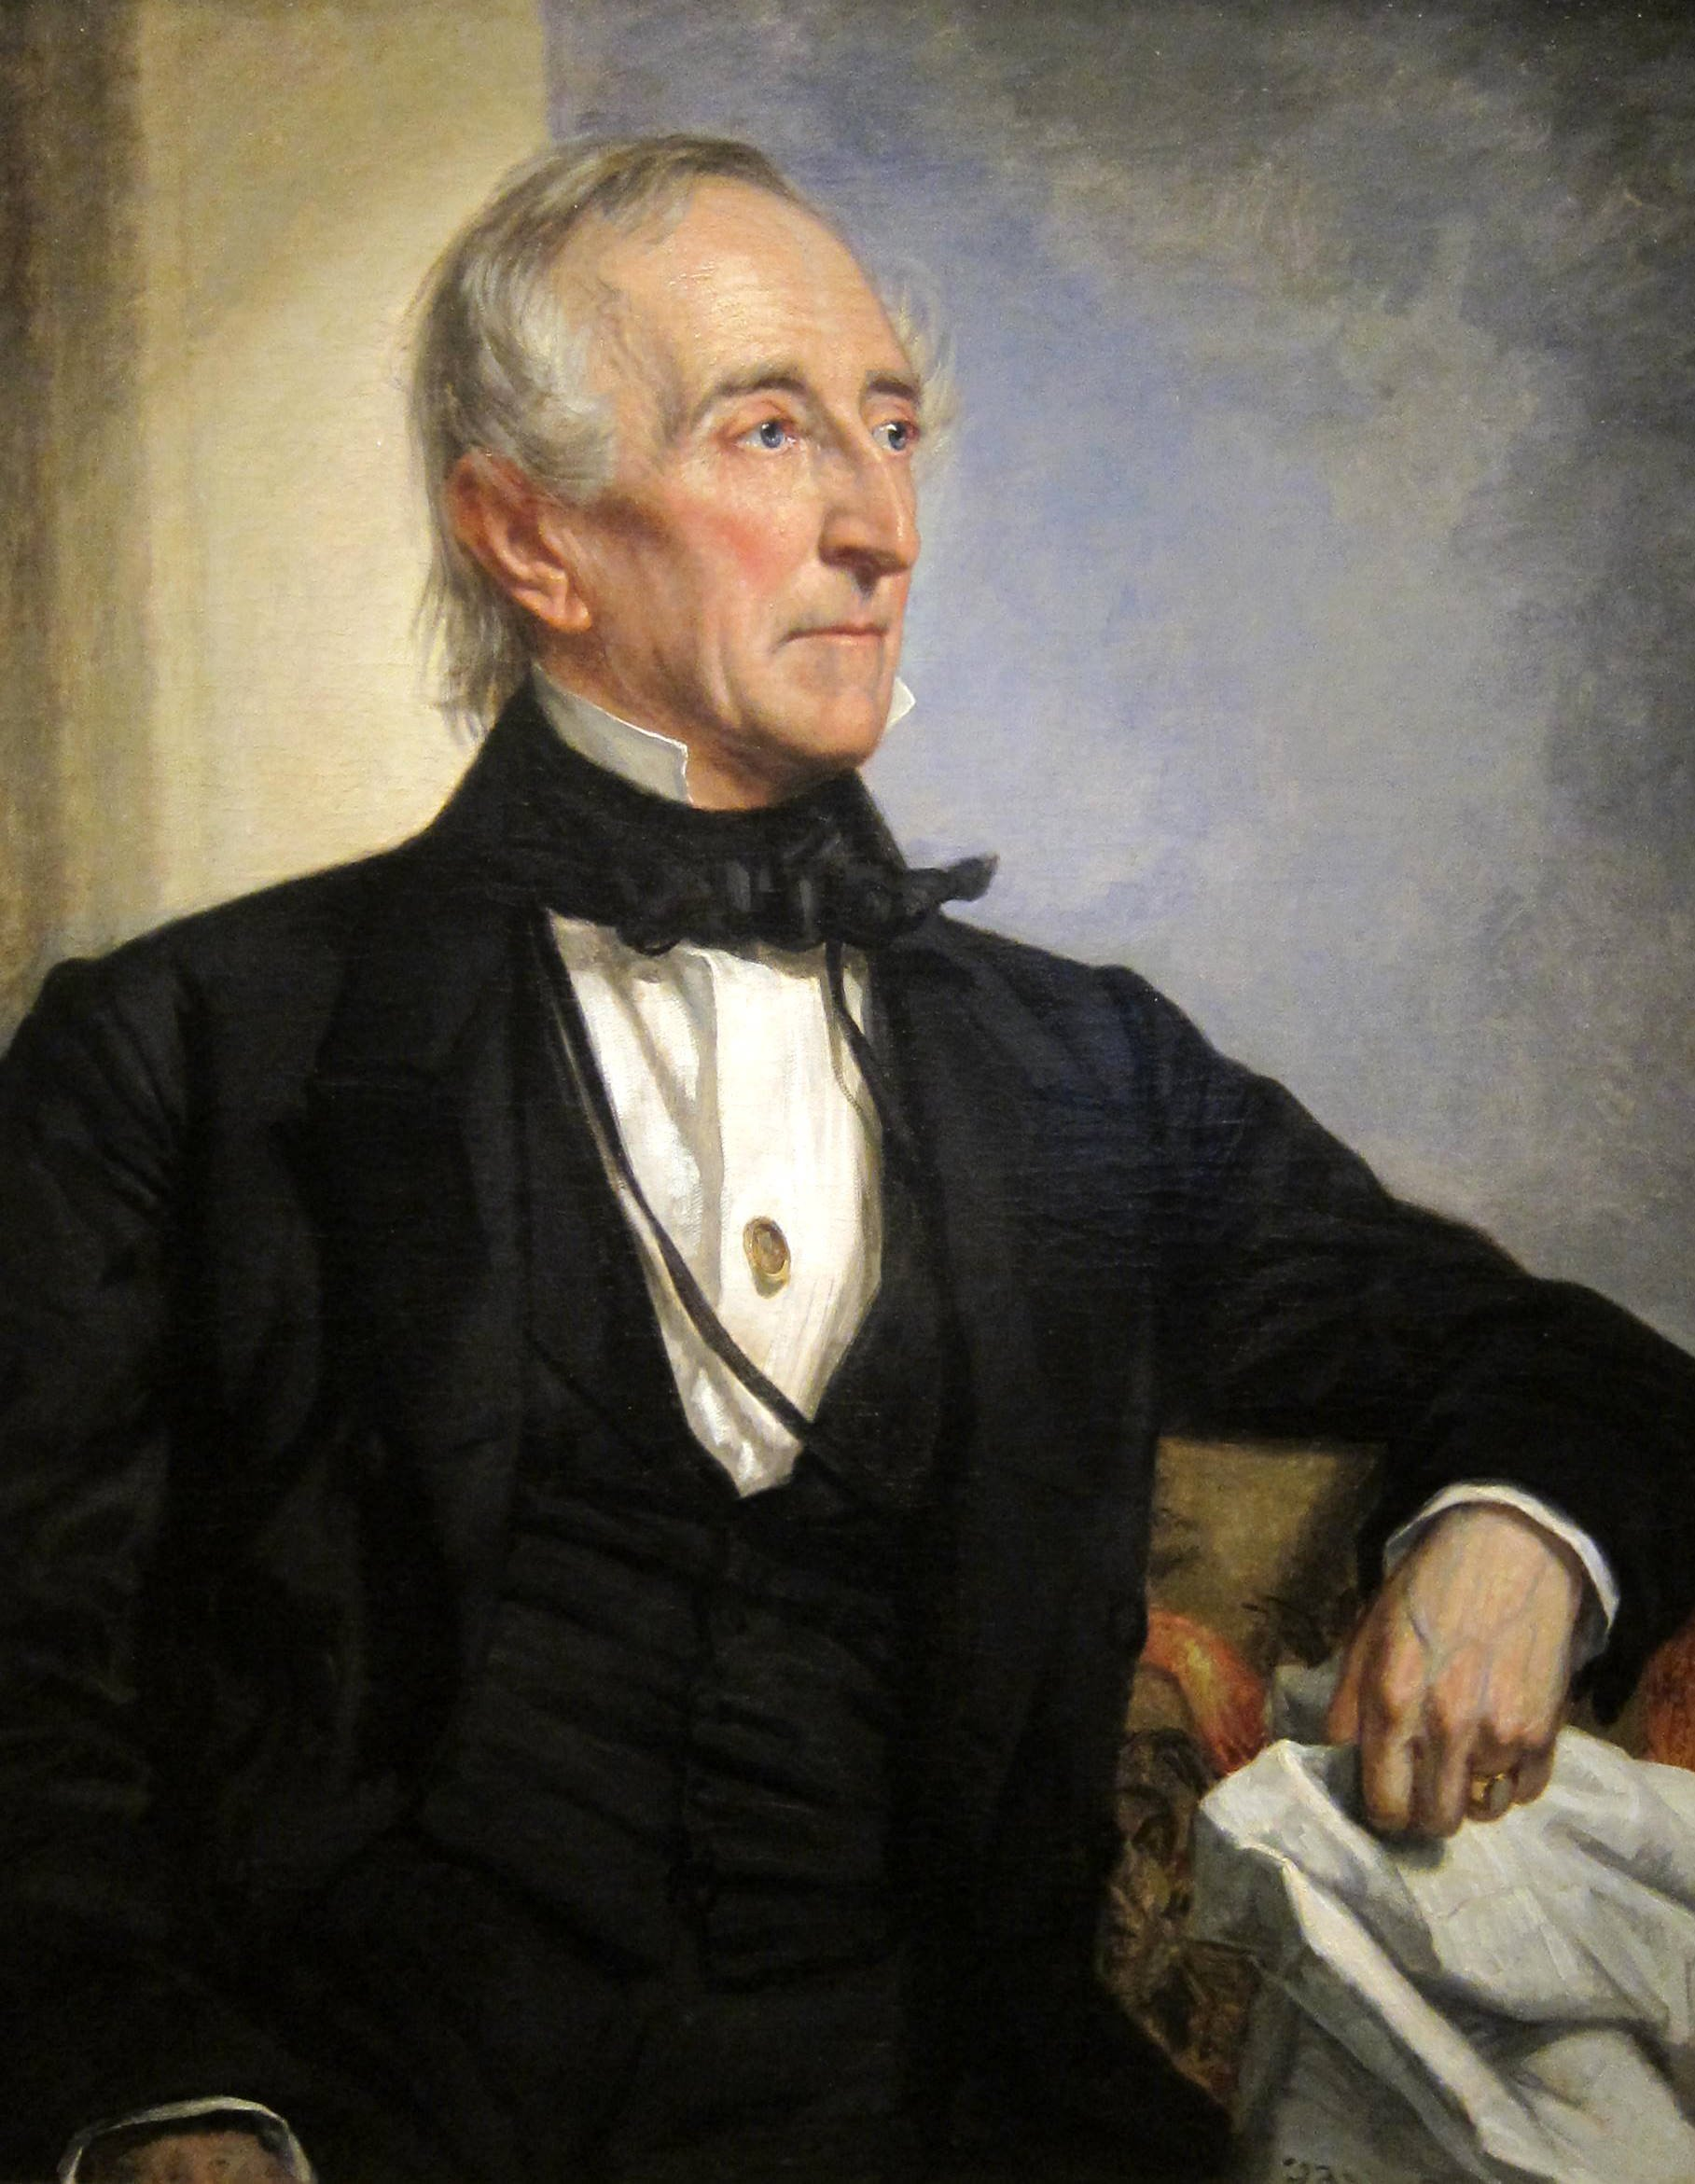 John Tyler, the 10th President of the United States, was a visitor to the Inn. He was President from 1841-1945.